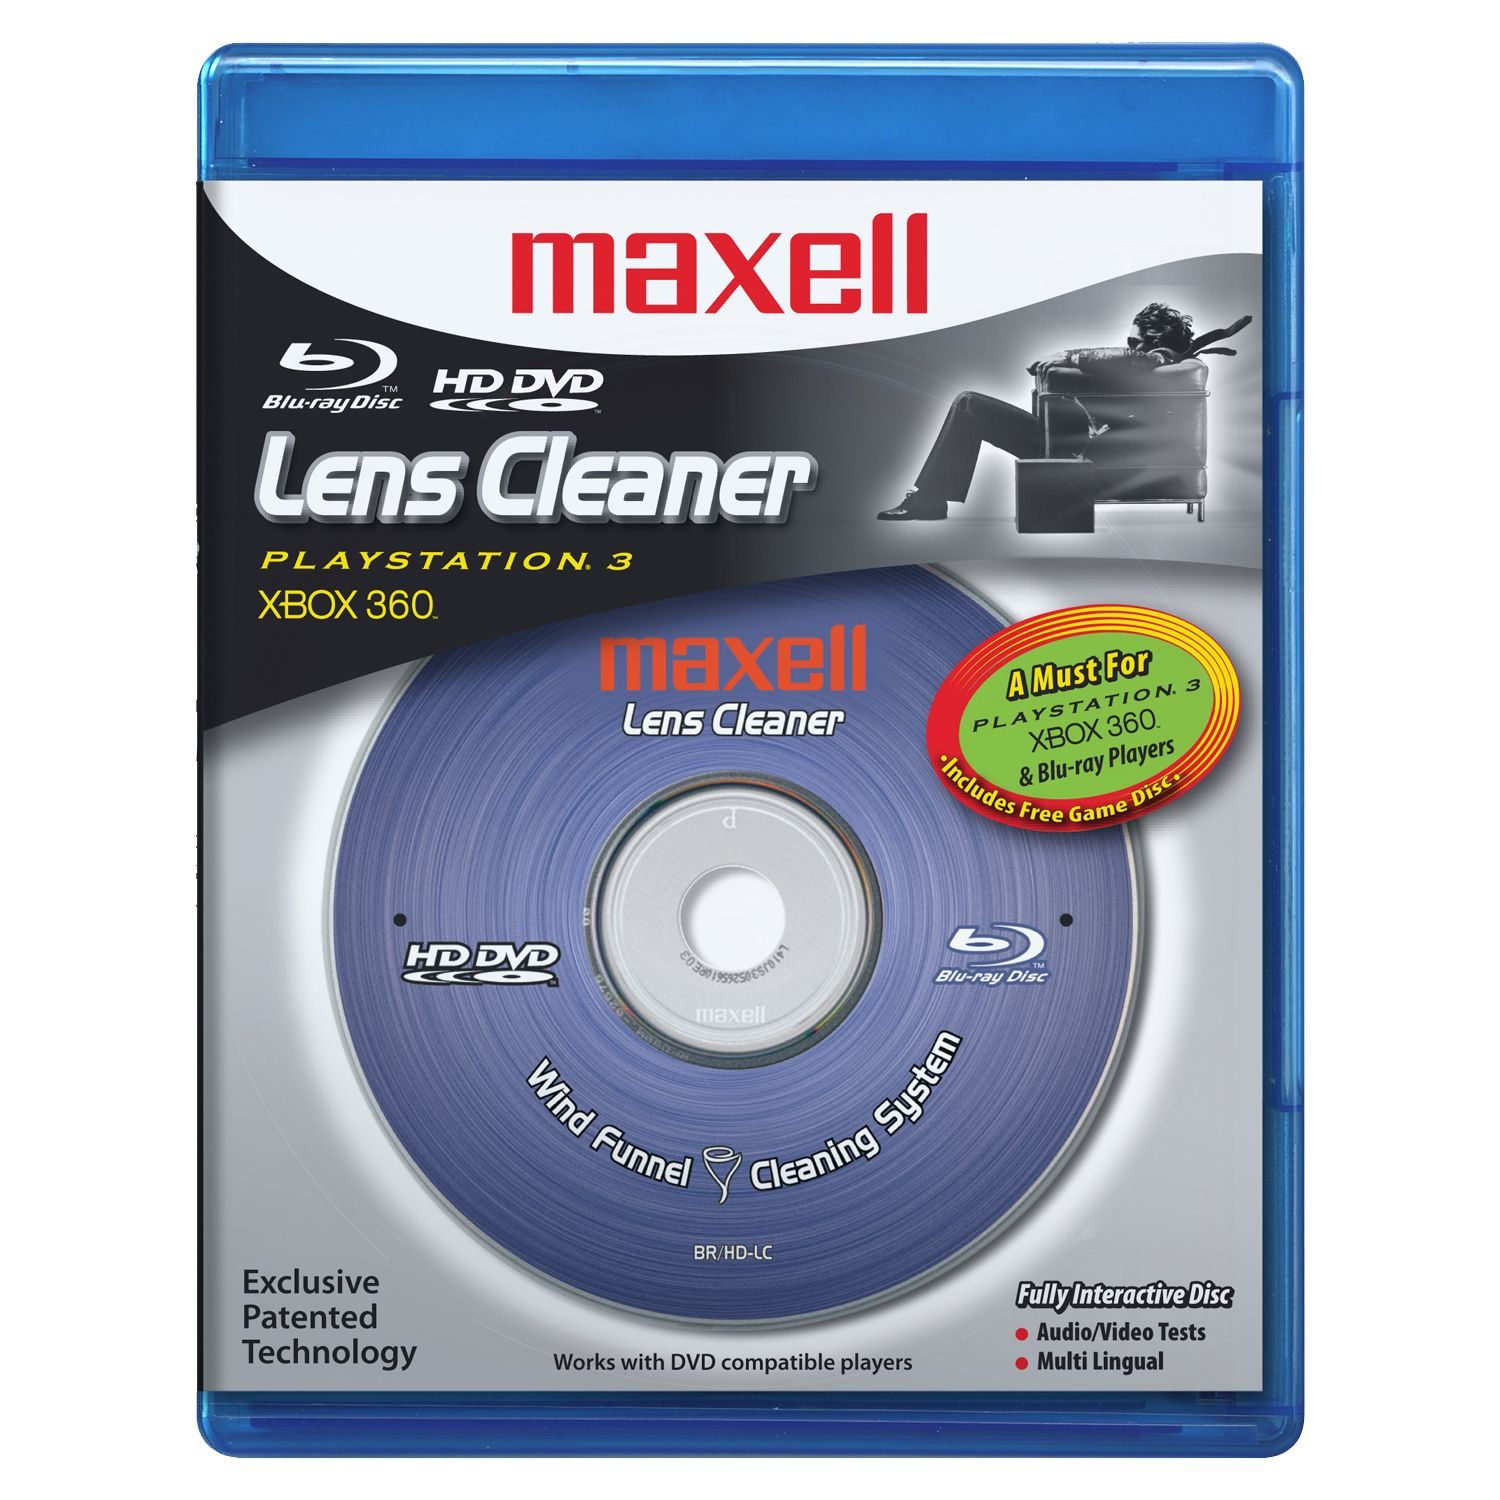 HD DVD & Blue-ray Disc Lens Cleaner